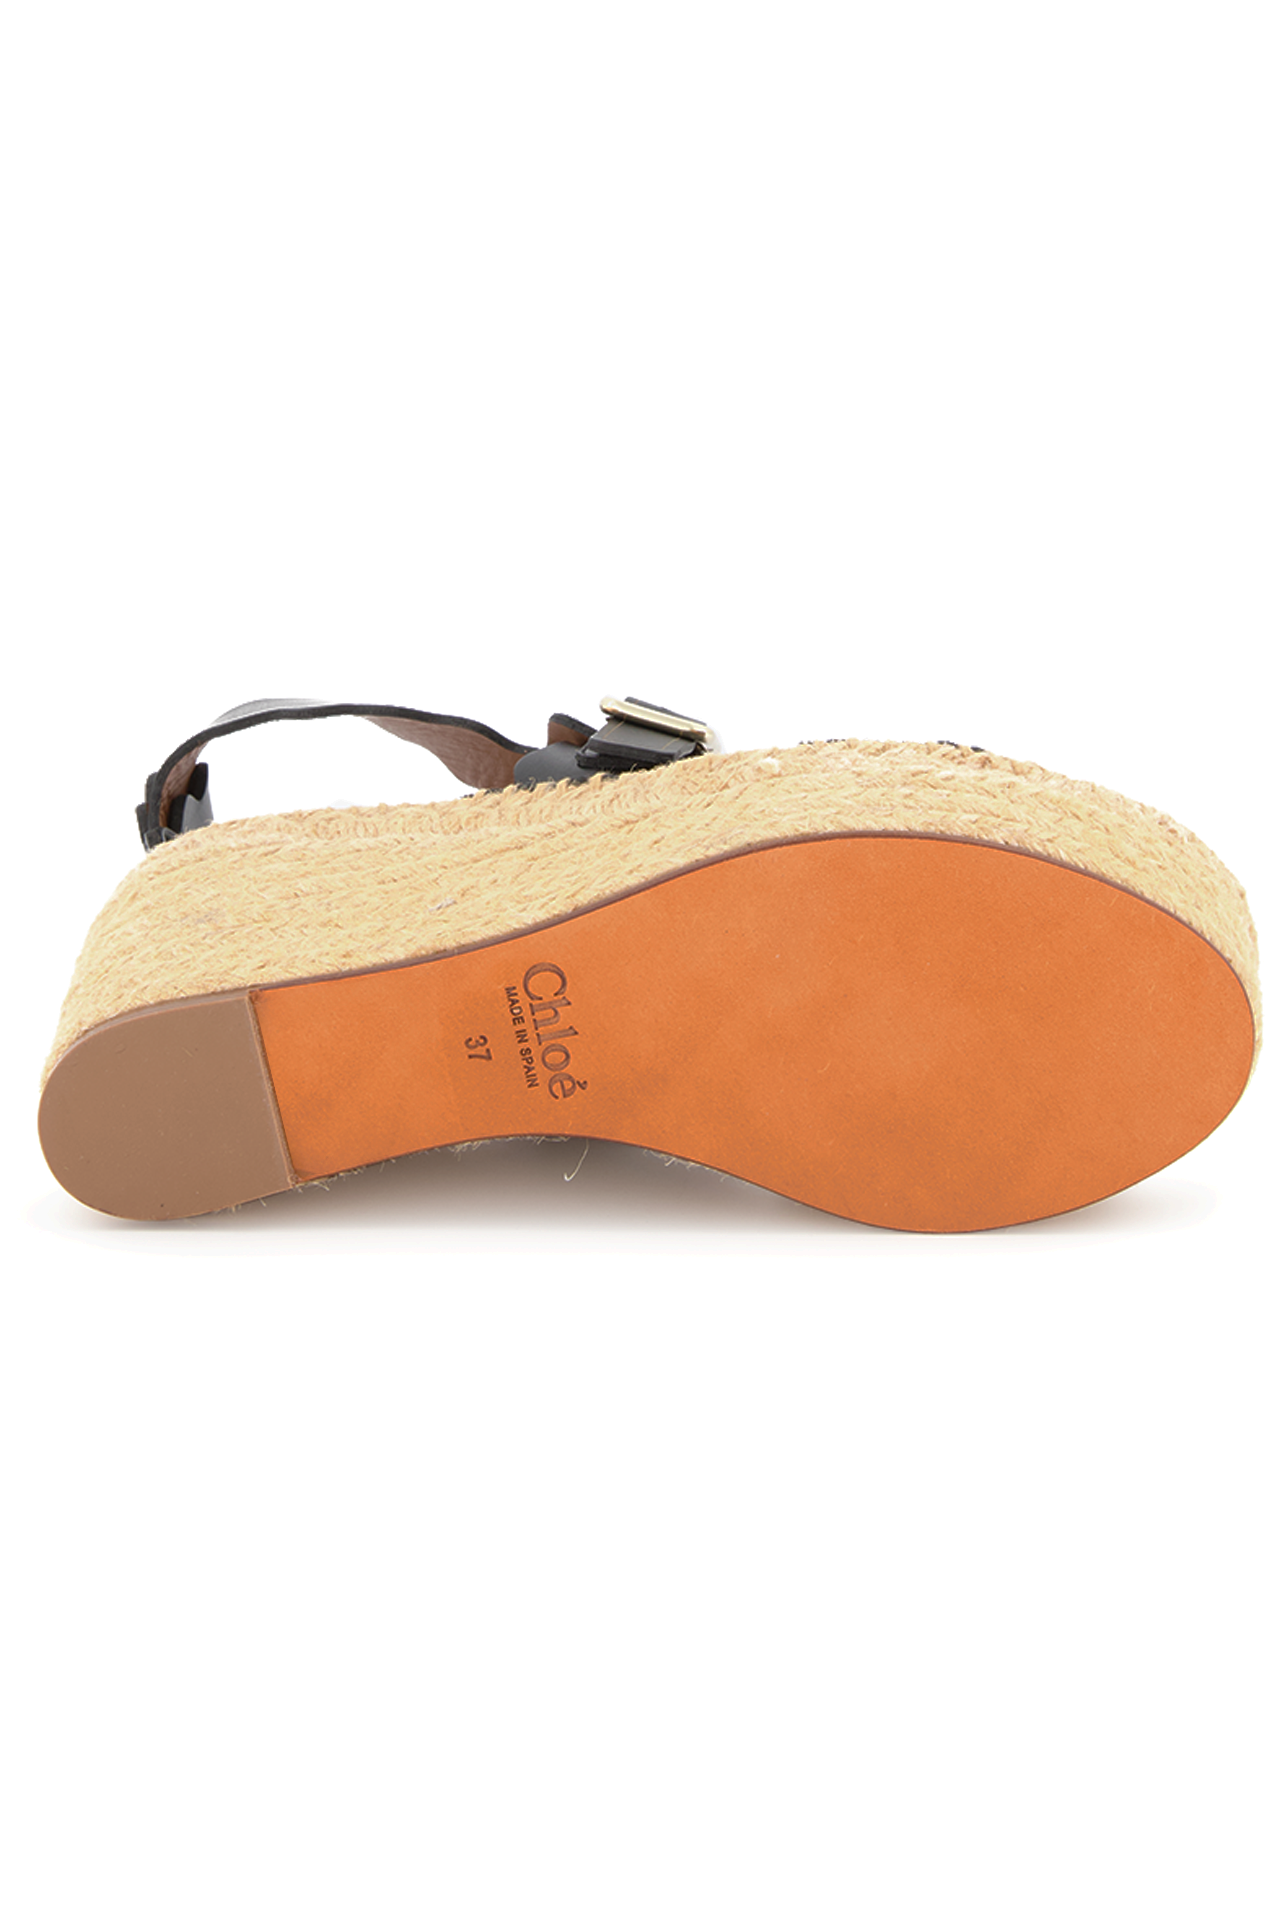 Outsole Image of Chloe Lauren Espadrille Wedge